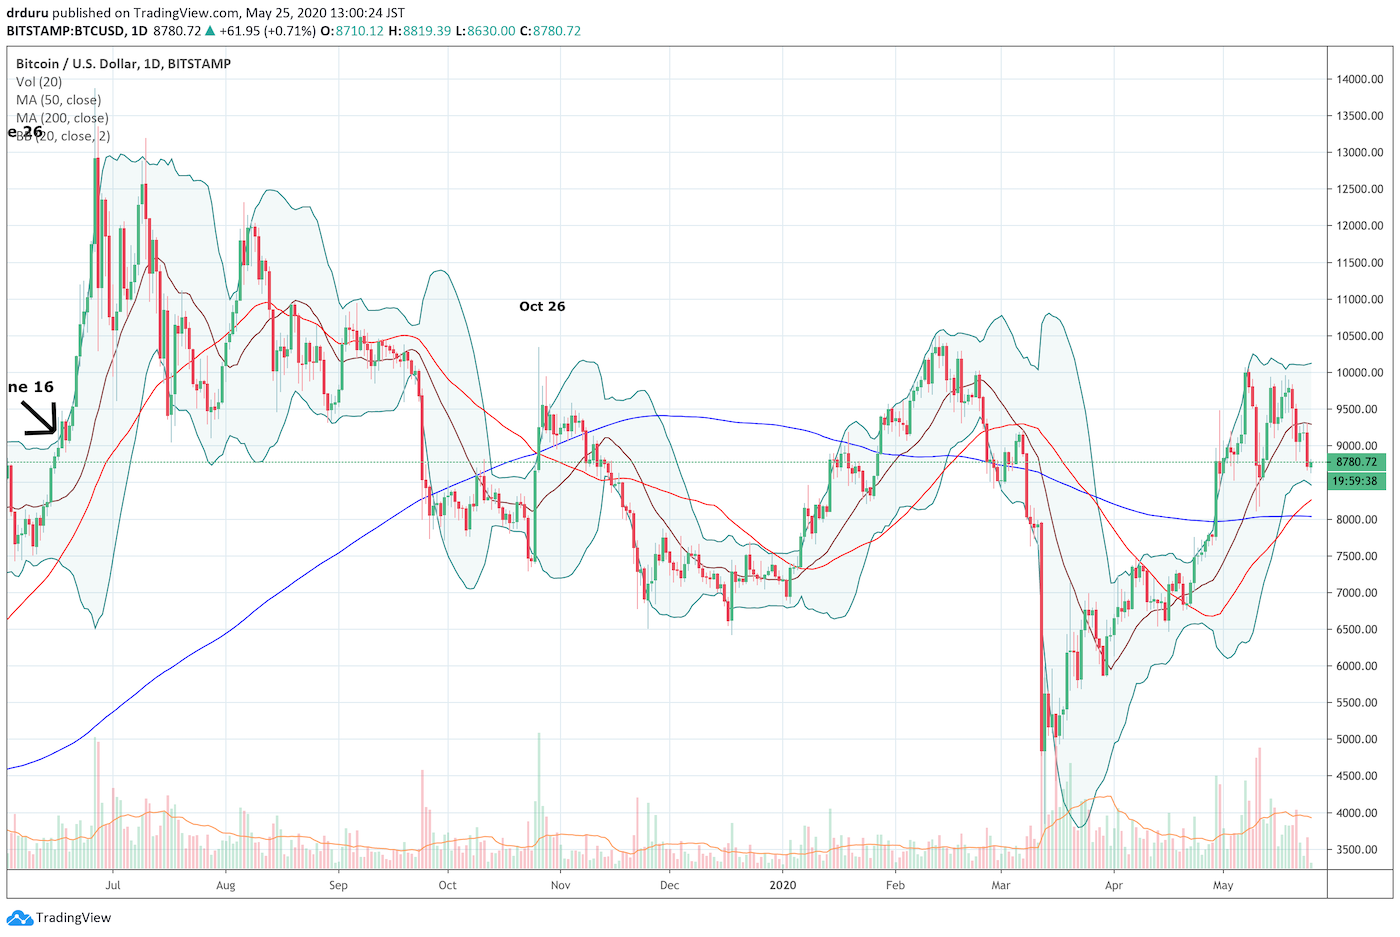 Bitcoin (BTC/USD) is wavering at the $10K resistance level. The price failure is leaving intact an on-going downtrend from June, 2019.